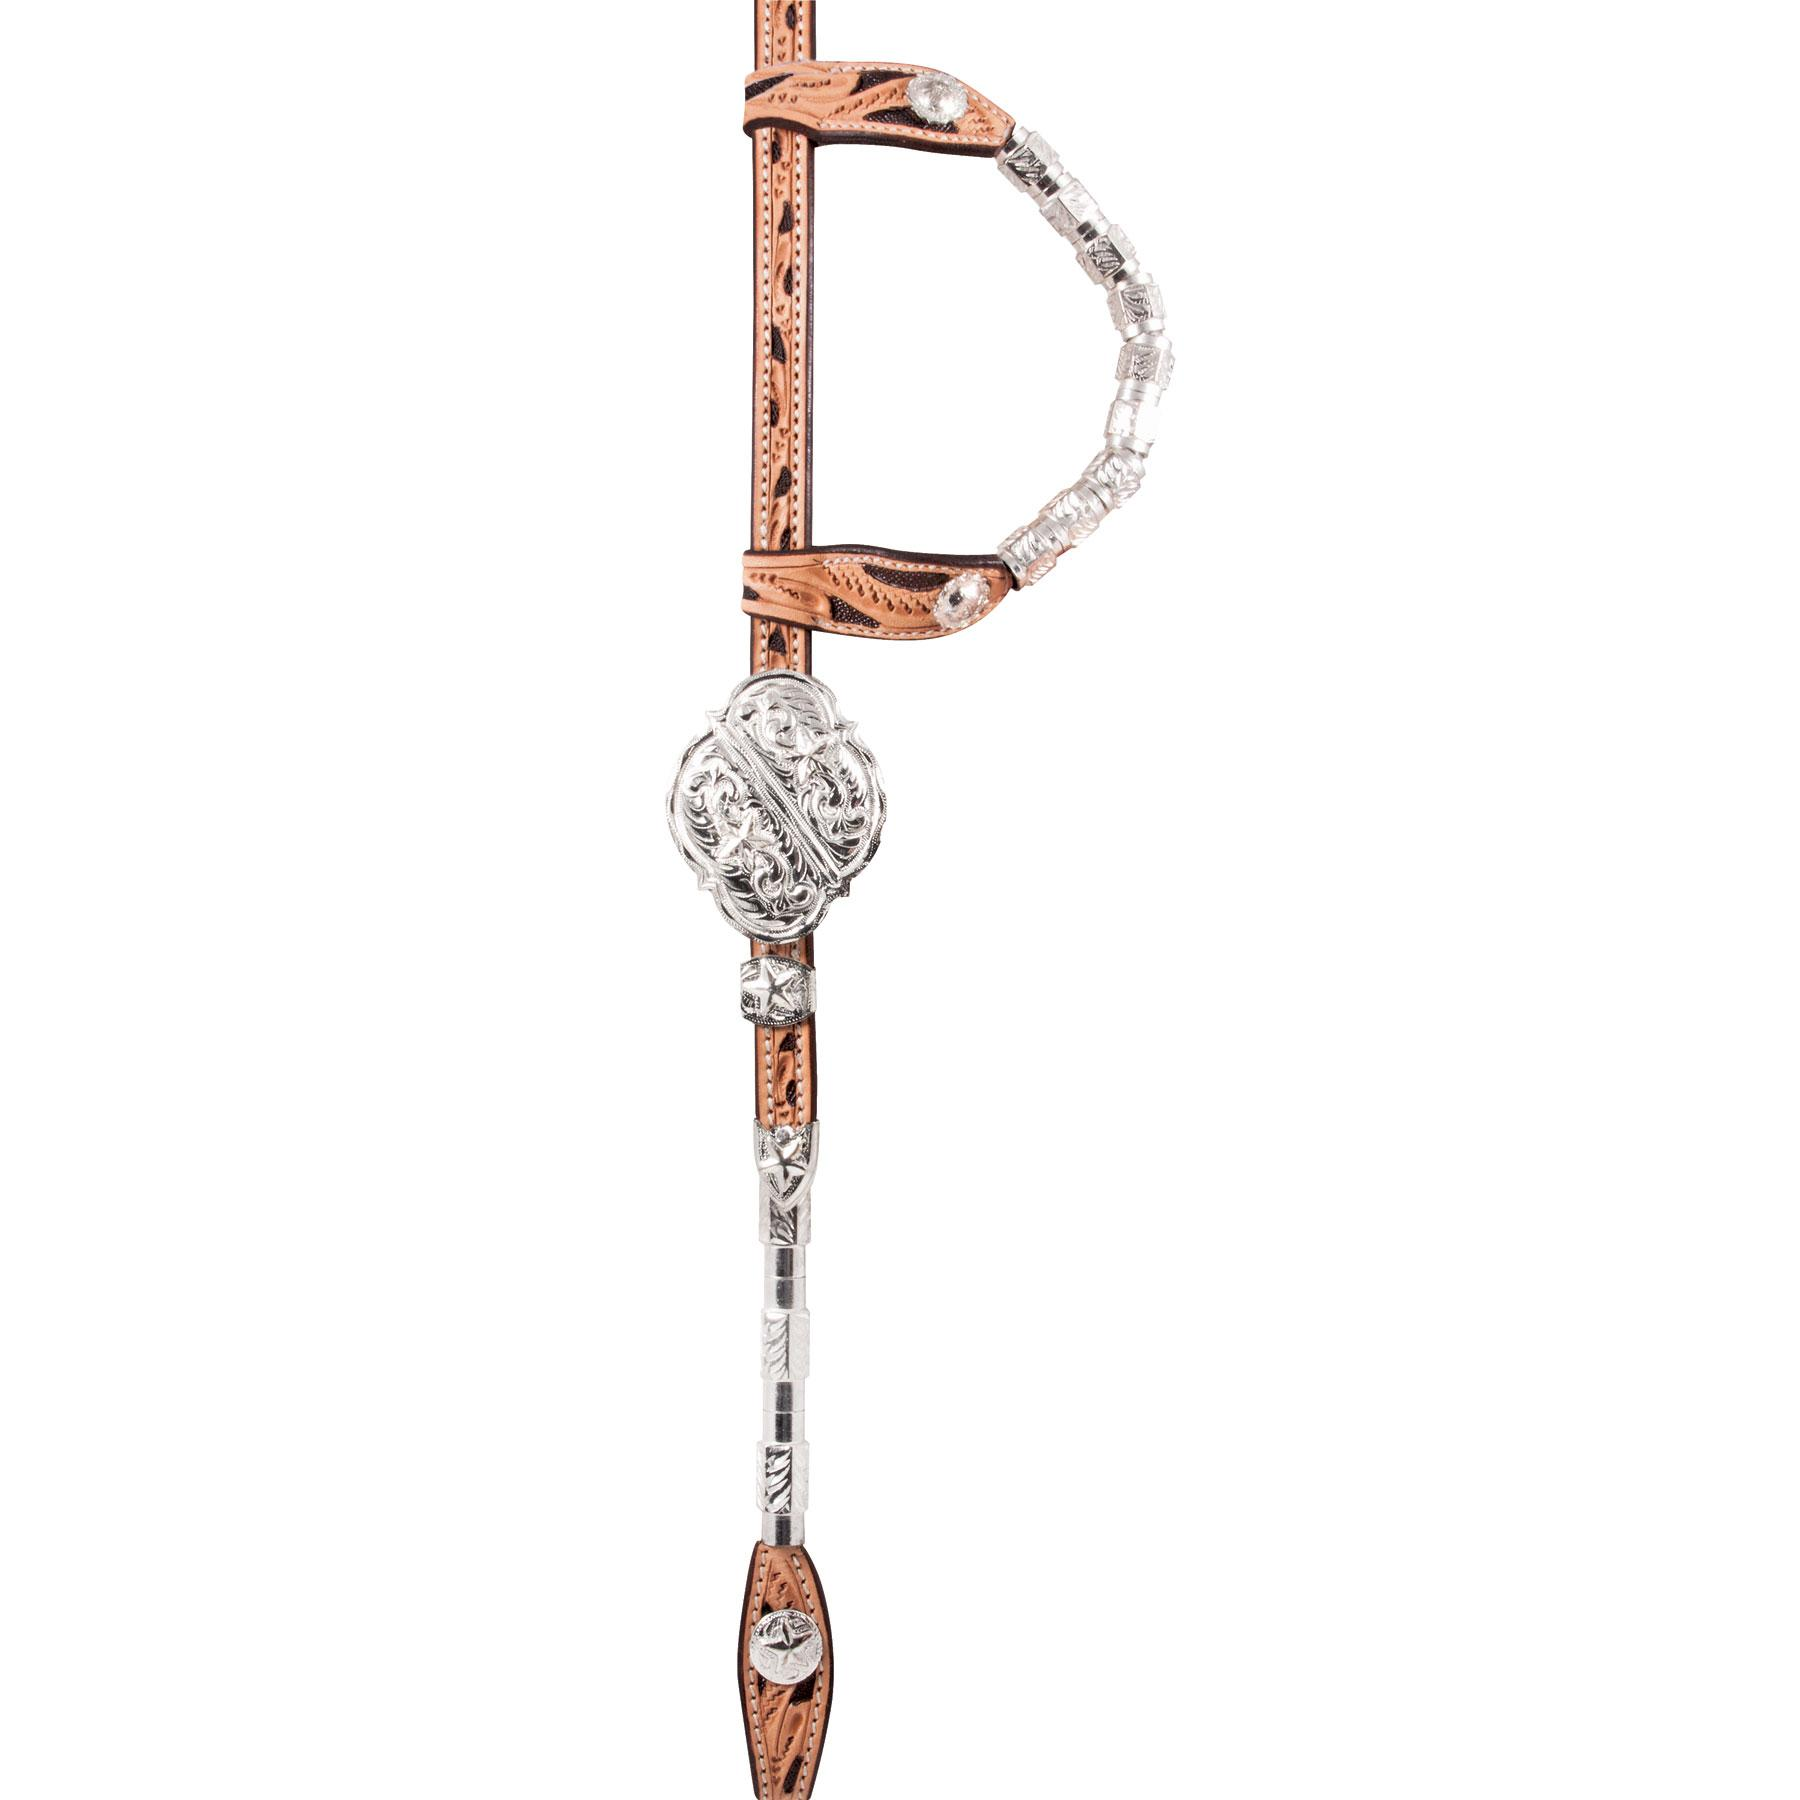 Schneiders Double S Award Square Ferrule Star Headstall